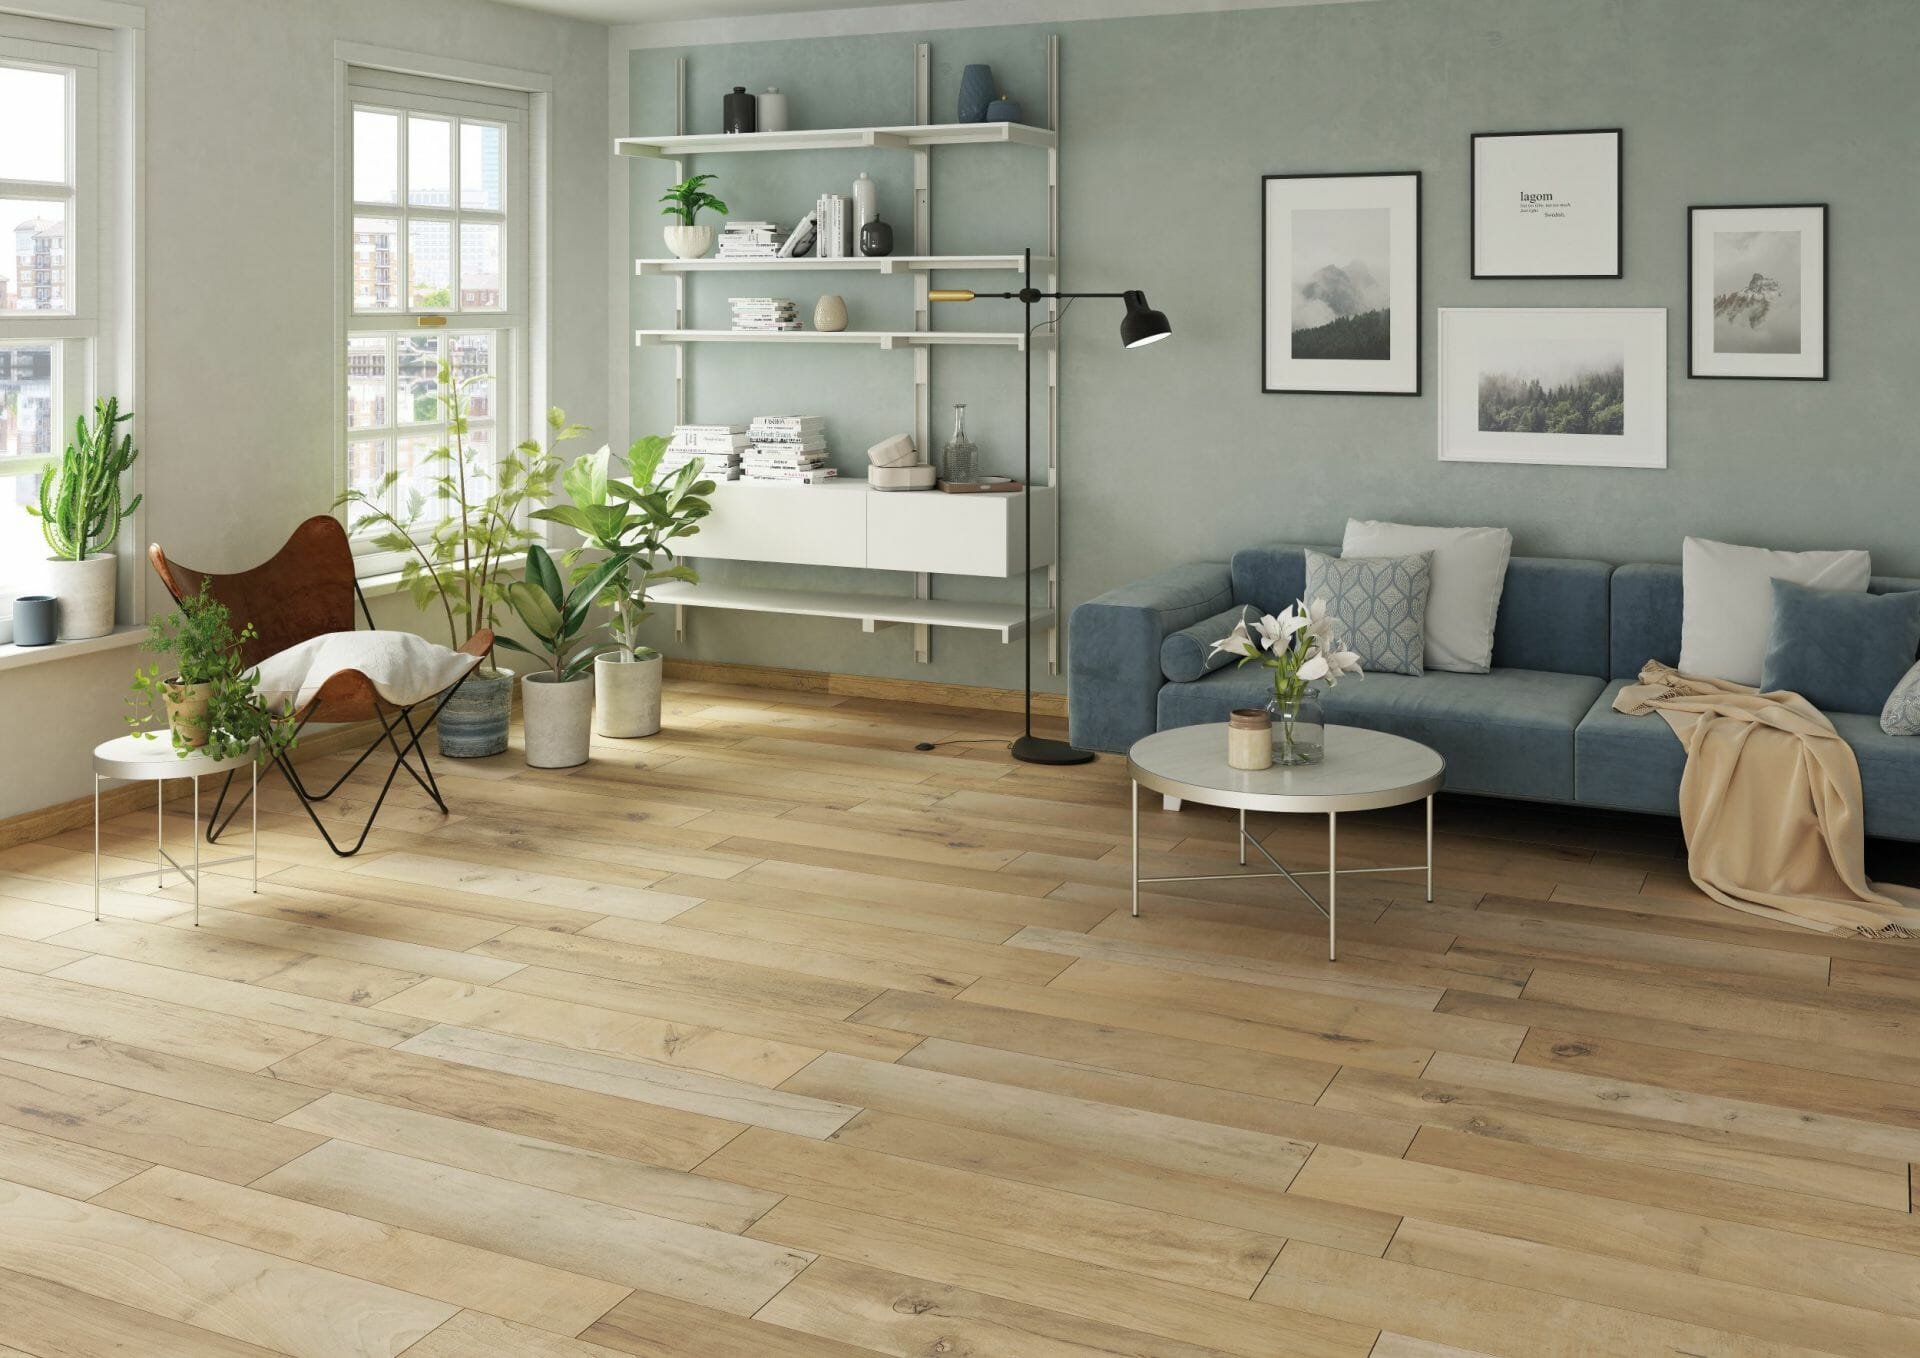 buy-latest-tiles-online-discounted-wood-flooring